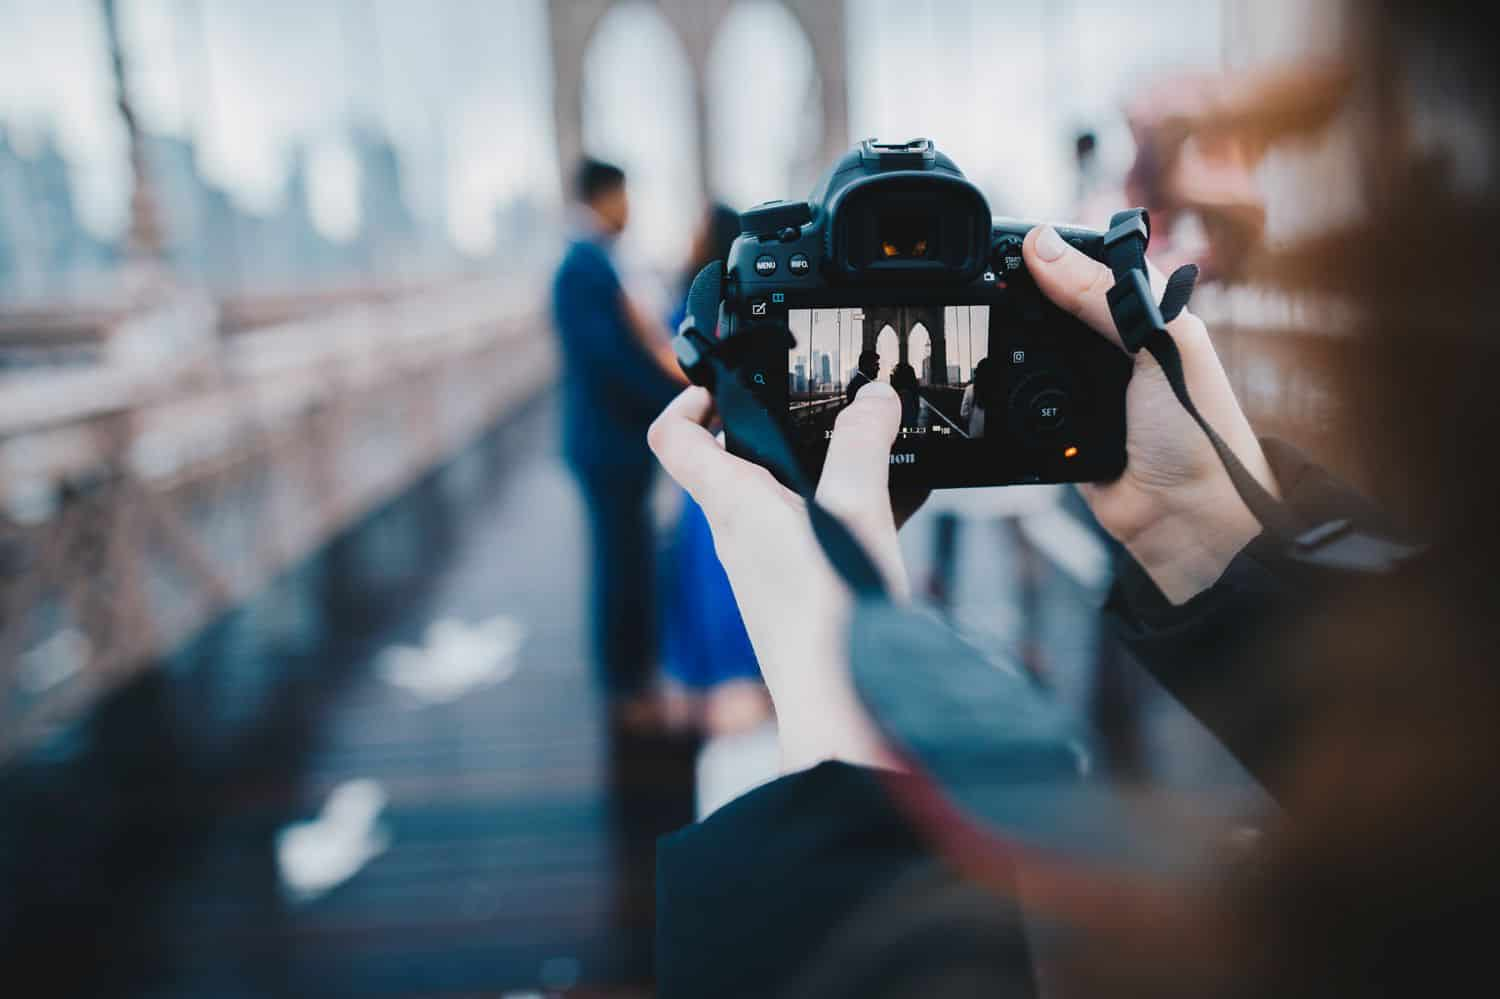 The back of a photographer's camera is in-focus as she photographs a couple standing on the Brooklyn Bridge, which is blurry in the background.